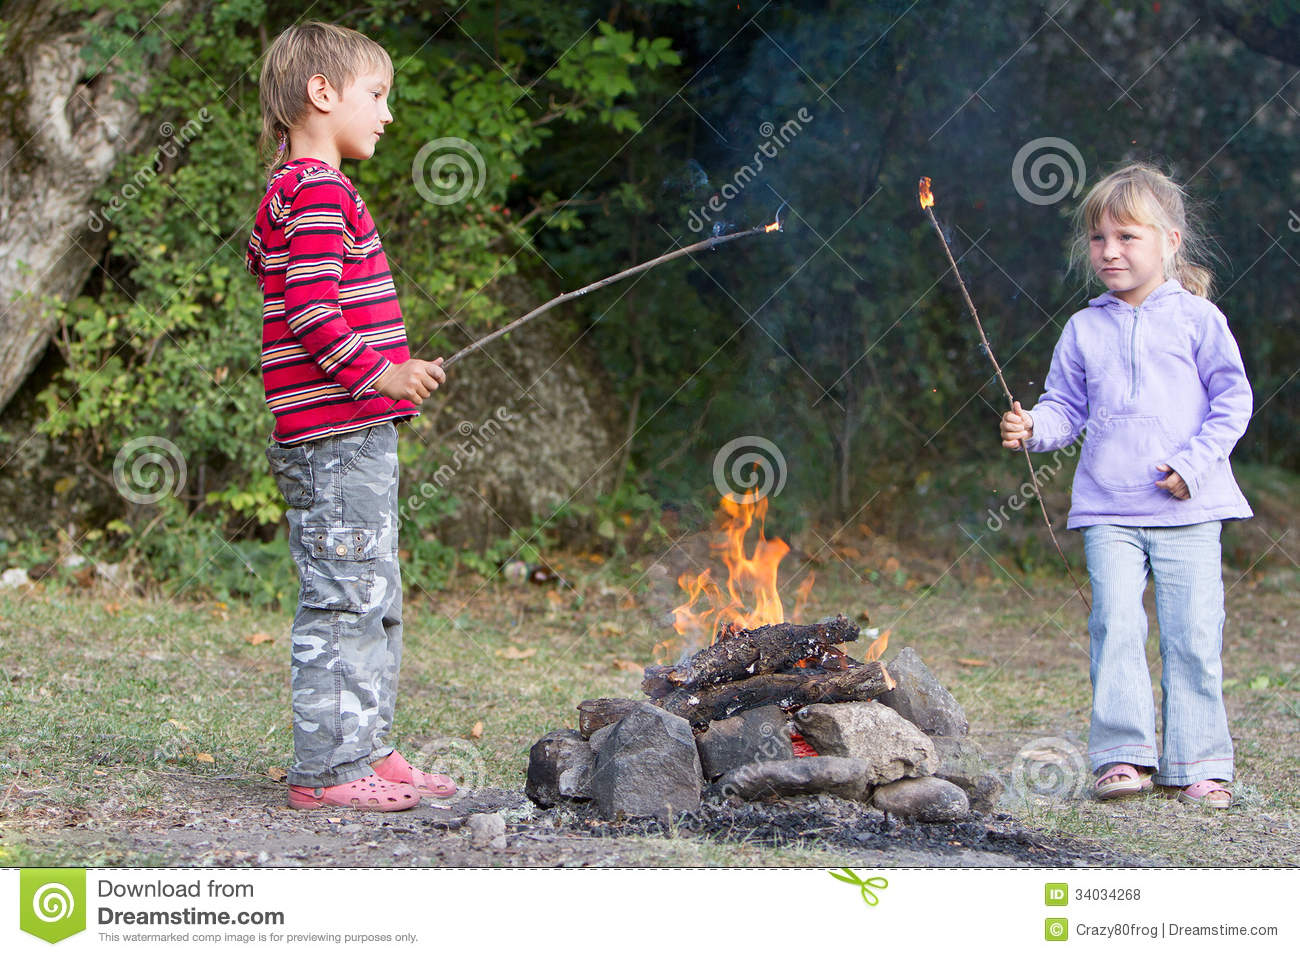 Children Boy And Girl Playing With Fire On Natural Backgroun